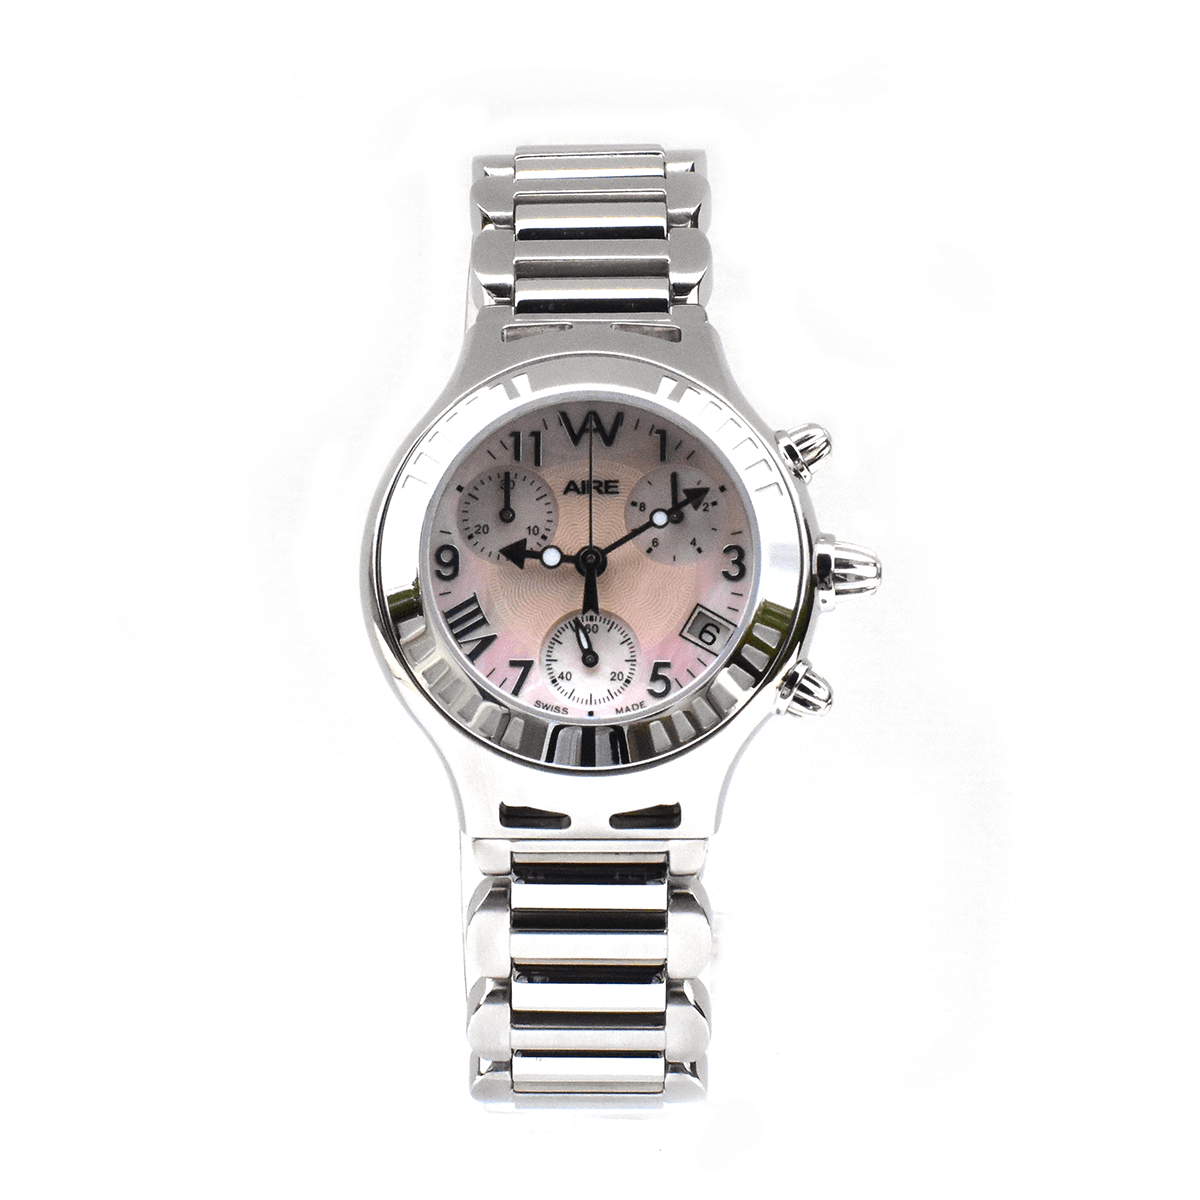 Aire Parlay Chronograh Swiss Made Quarz Caliber Women's Watch